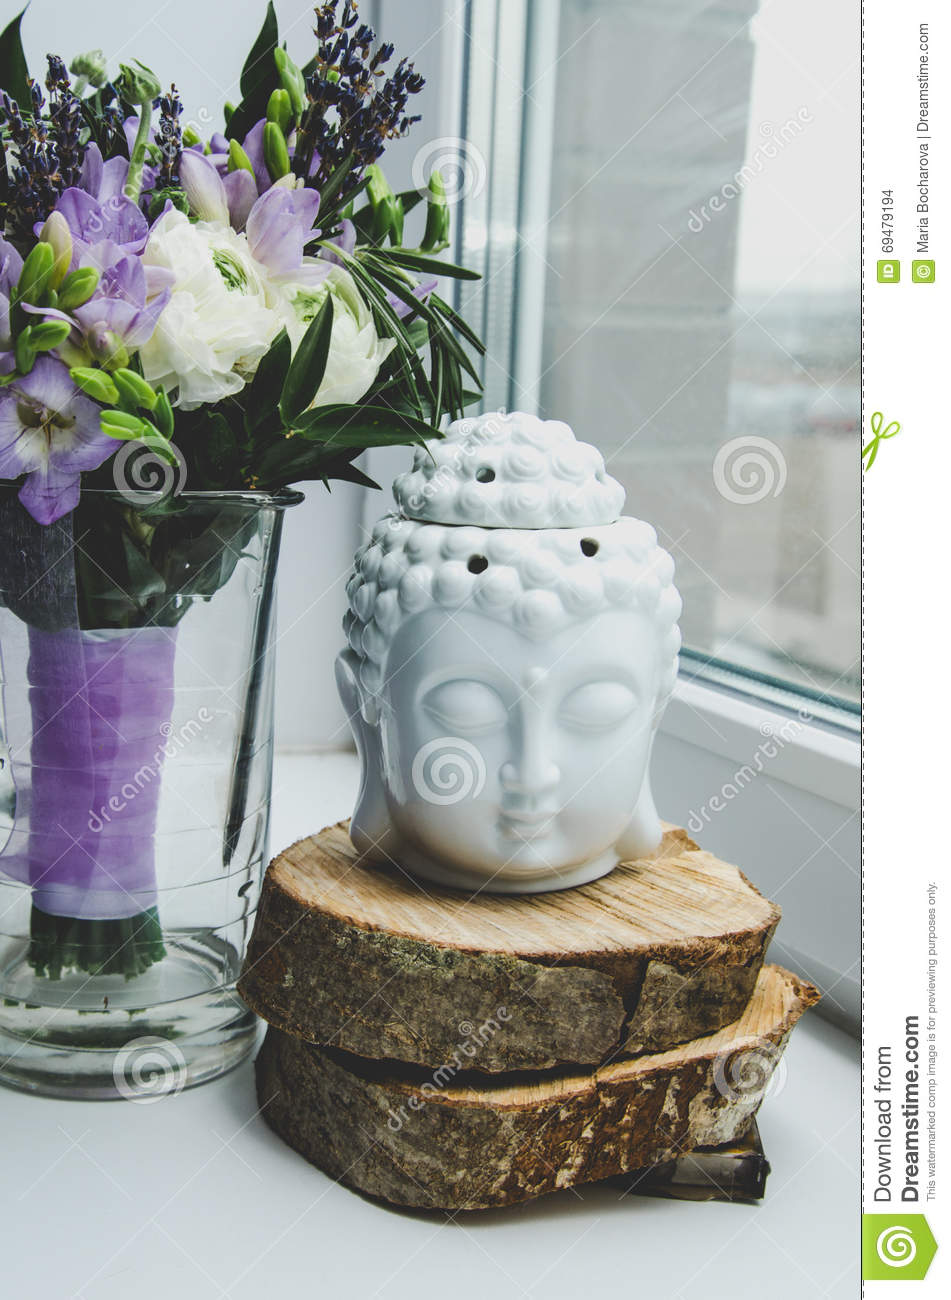 Spiritual Ritual Meditation Face Of Buddha On White Background Rustic Spring Bouquet Flowers Buttercup Ranunculus Stock Photo Image Of Faith Budha 69479194